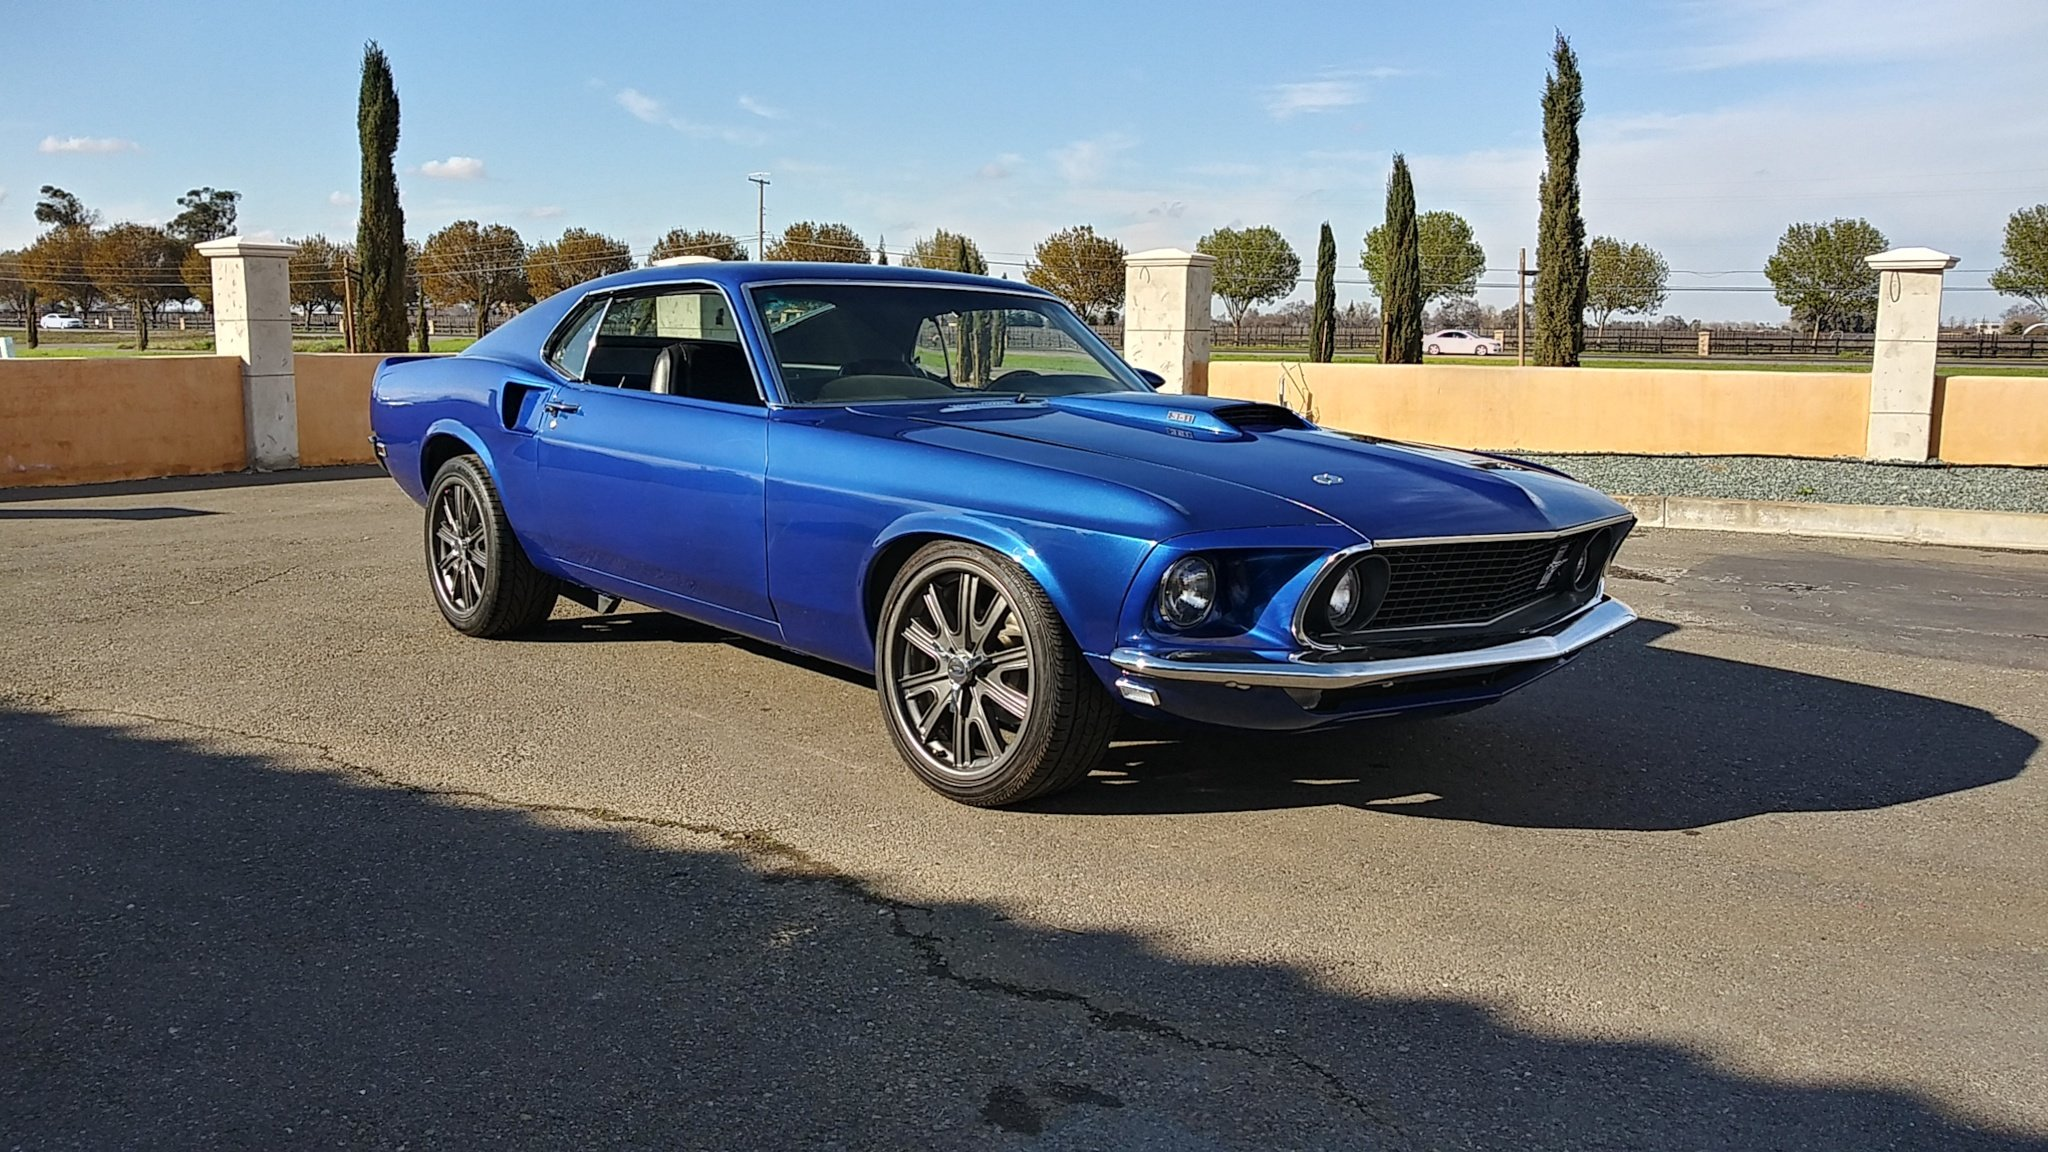 1969 Ford Mustang Fastback '69 For Sale (picture 1 of 6)